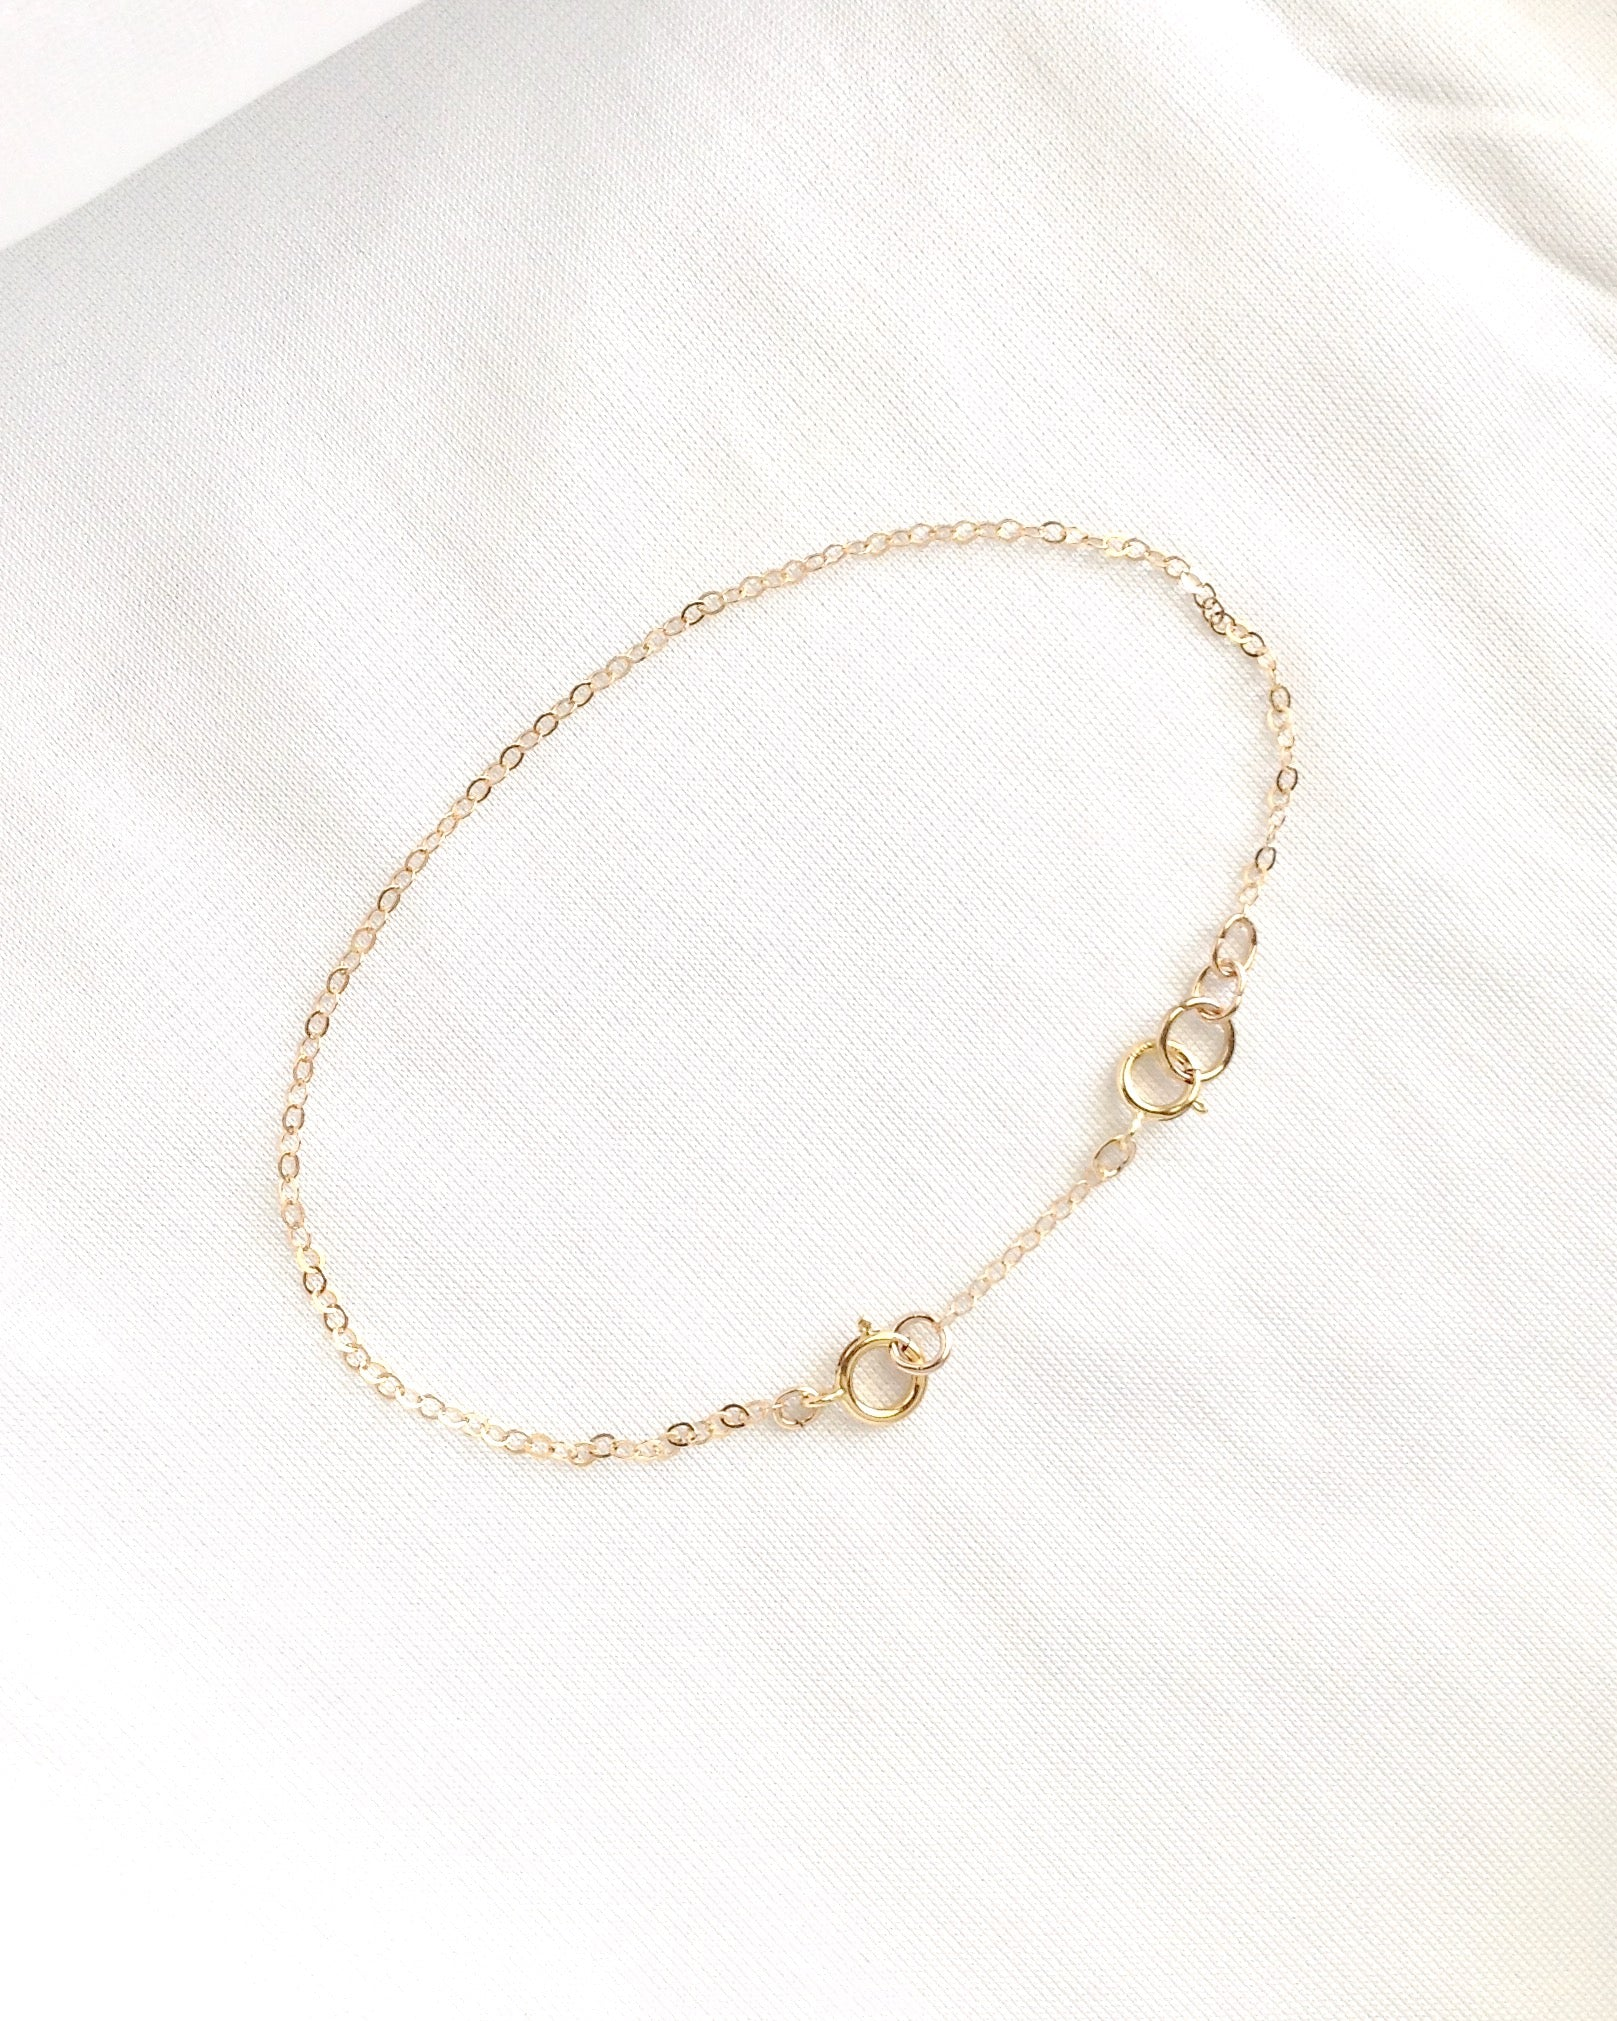 Removable Necklace Bracelet or Anklet Chain Extender